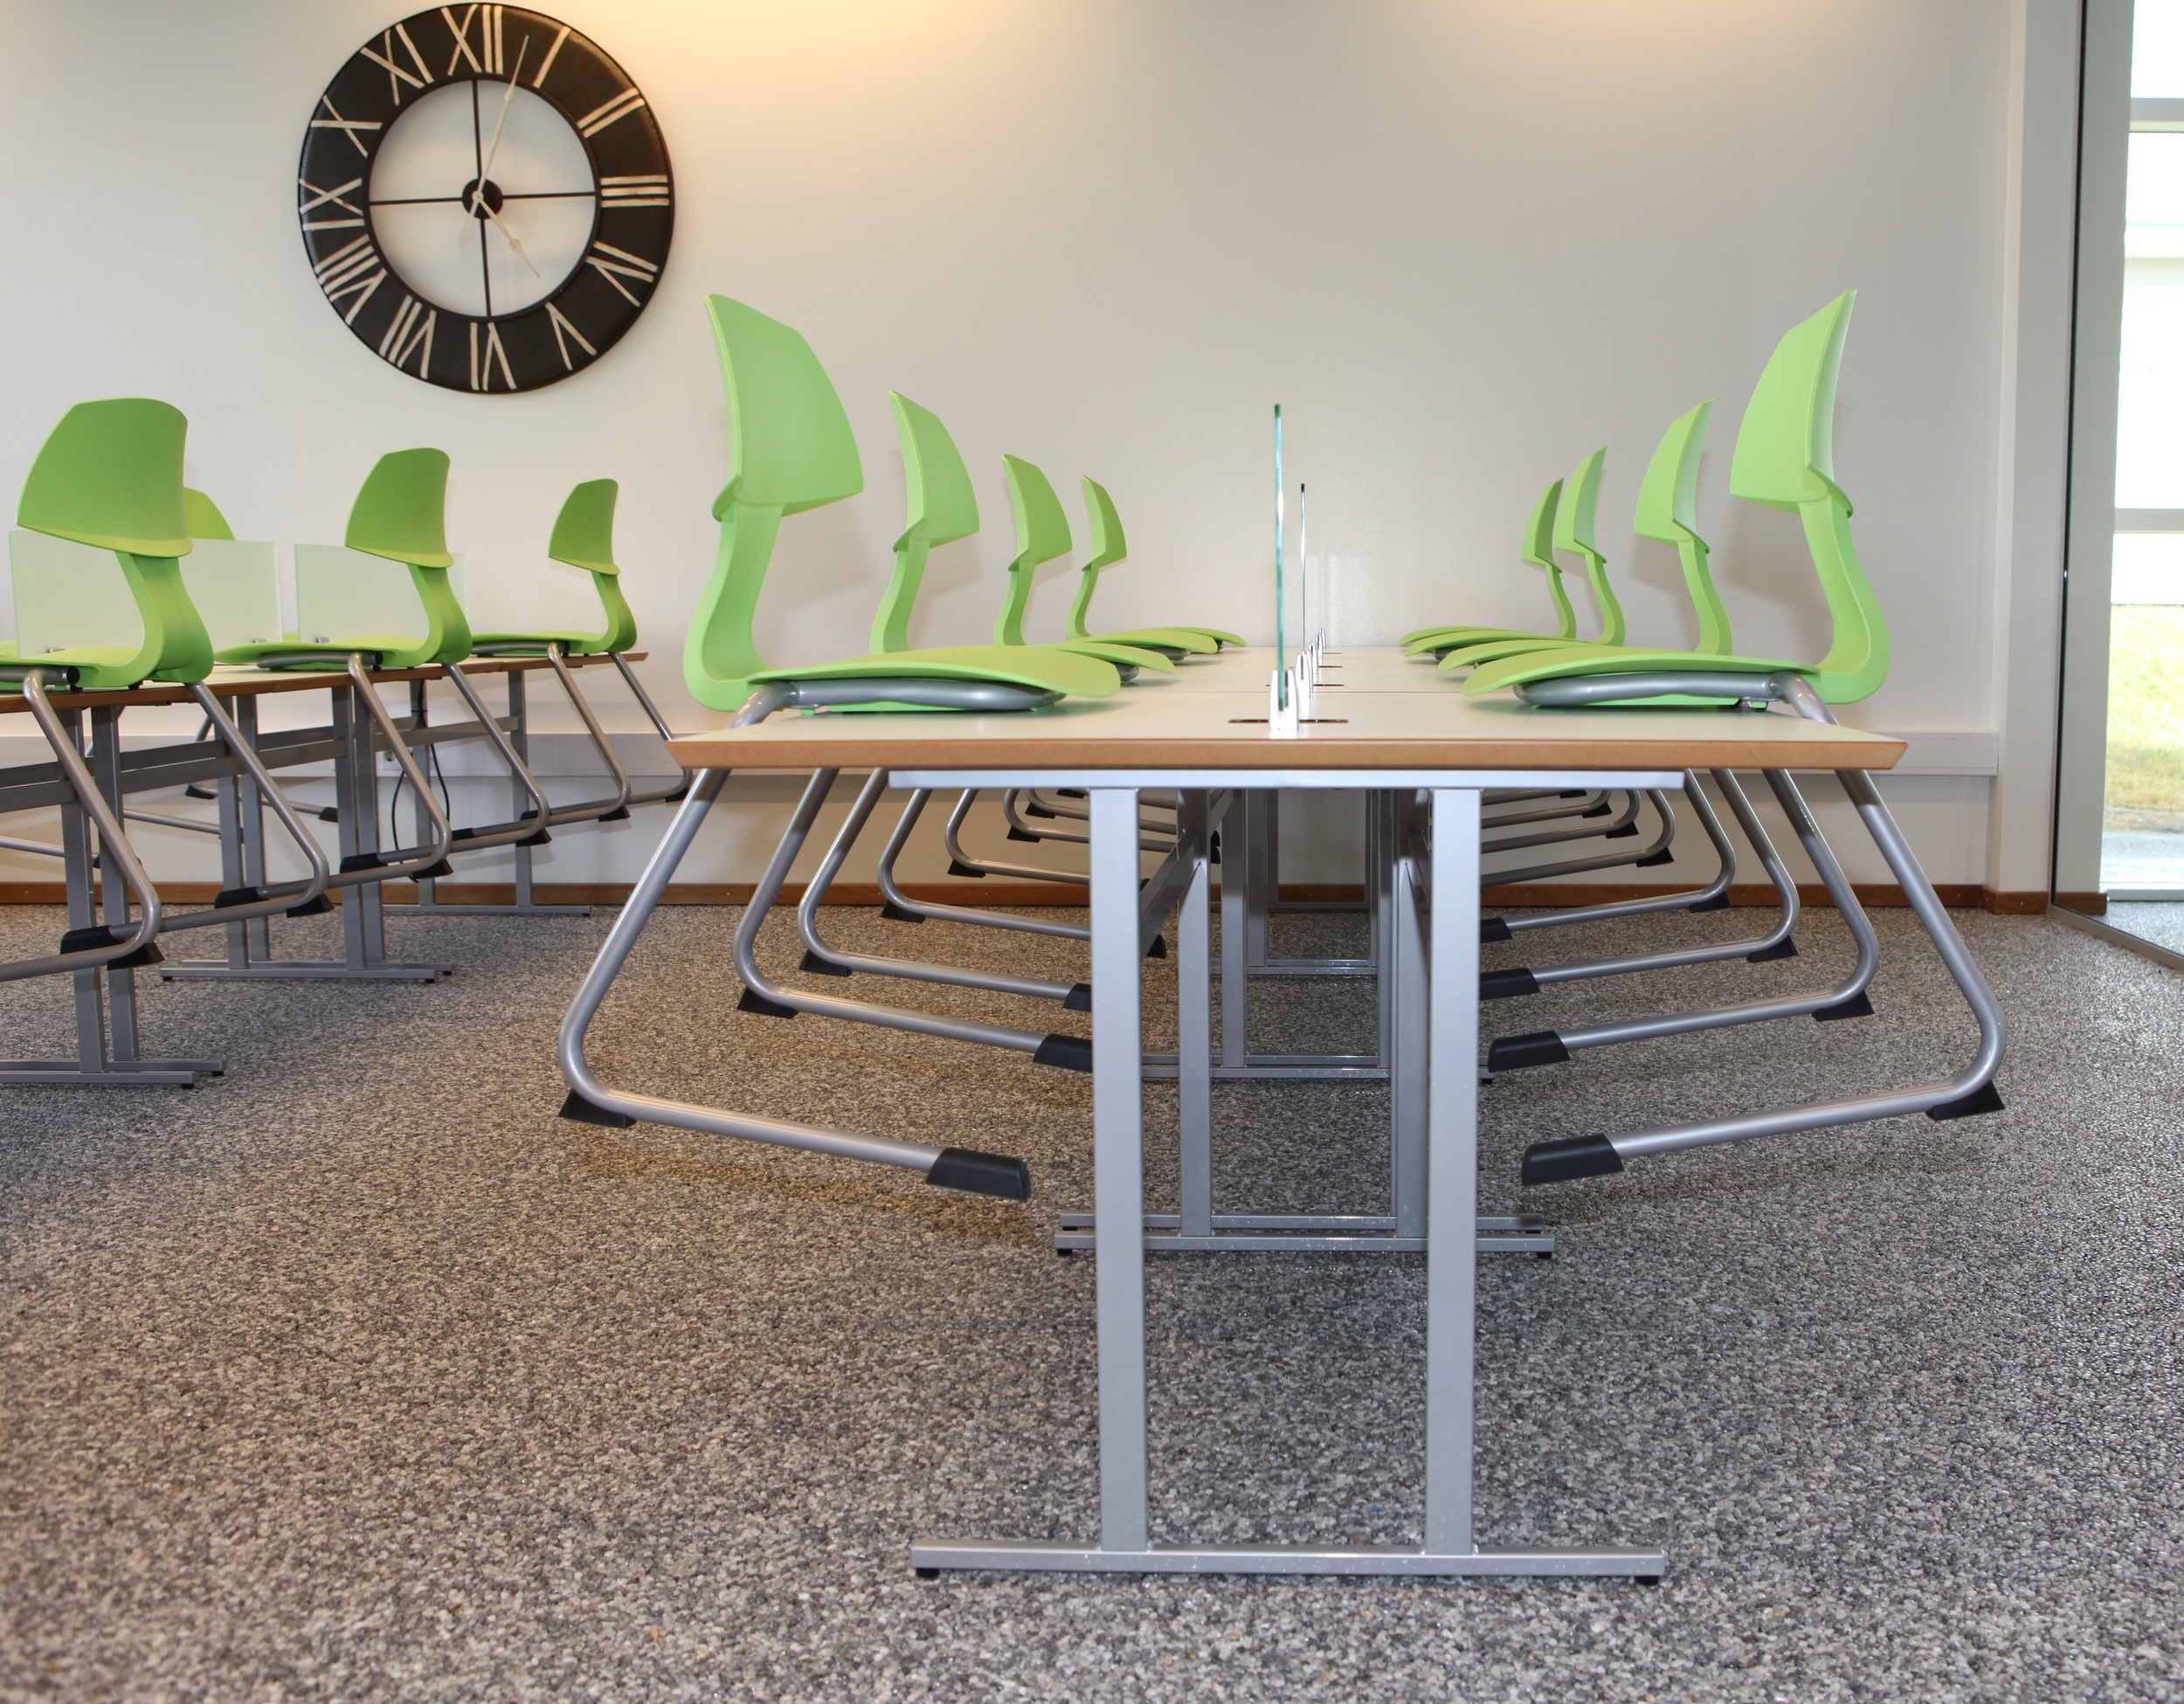 Lauf C-frame chairs